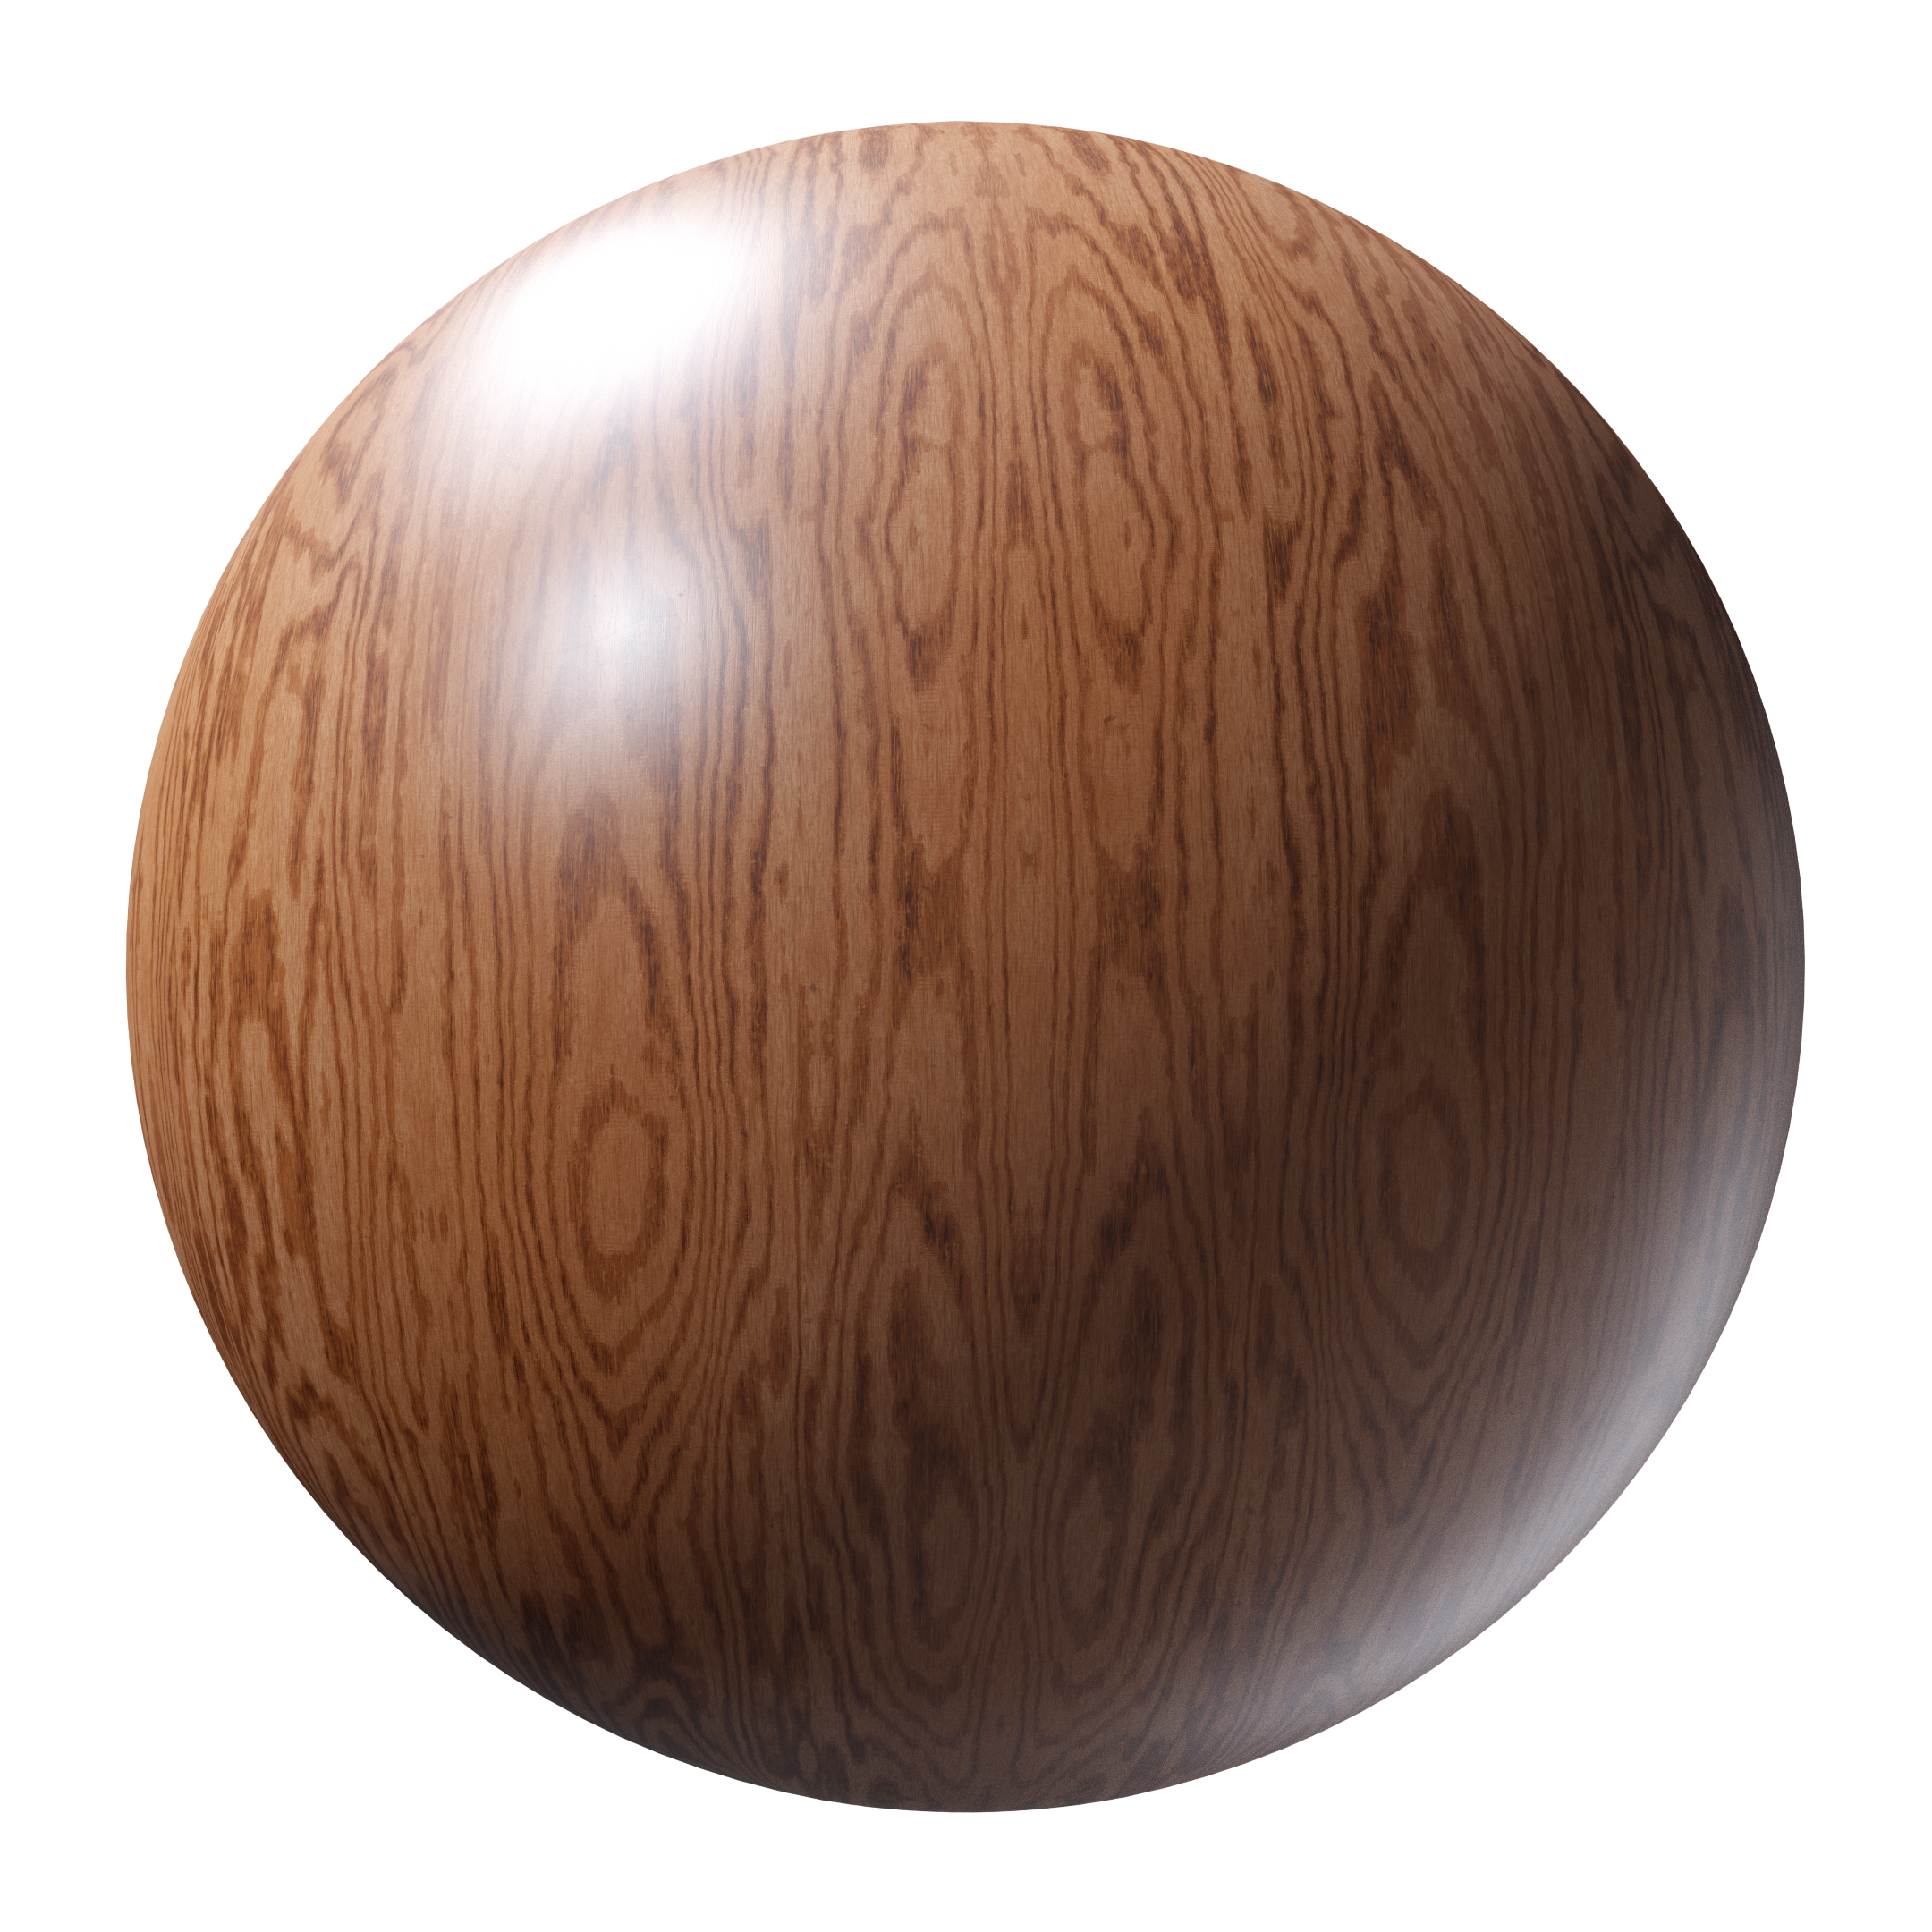 Tcom_Wood_OakVeneer2_thumb1.png